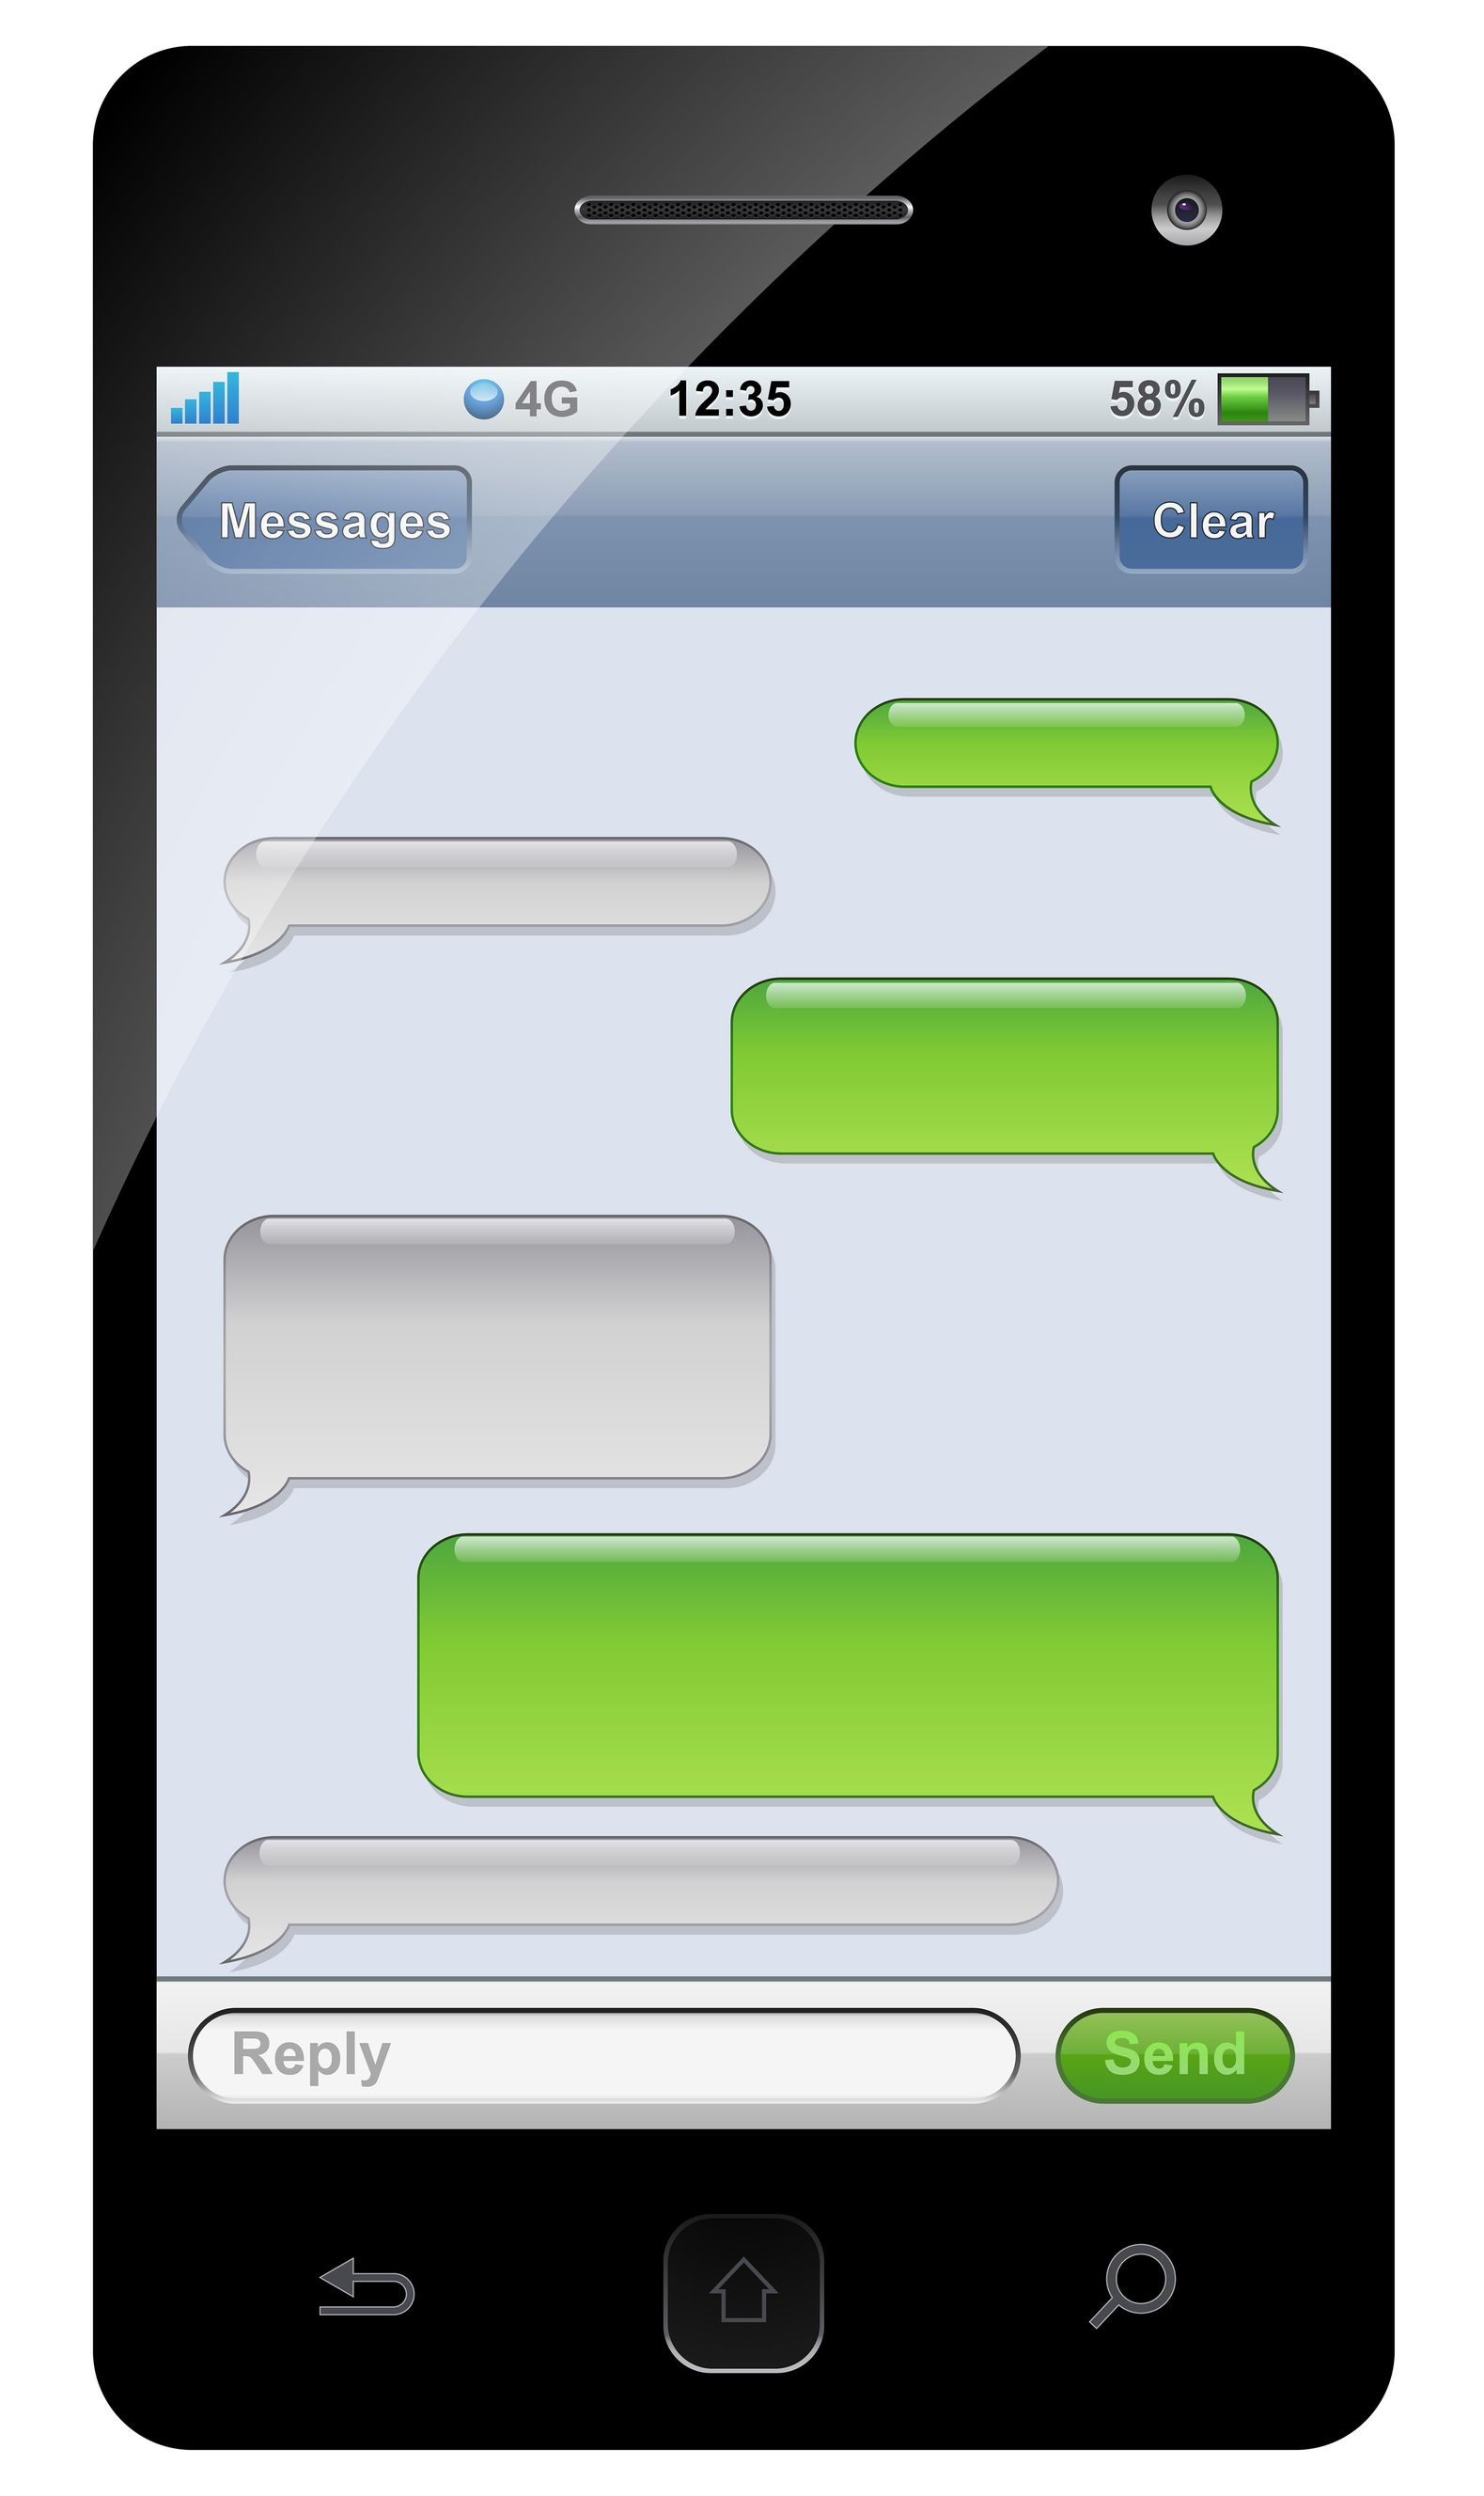 Iphone message clipart clip free stock Iphone text message clipart - ClipartFest clip free stock